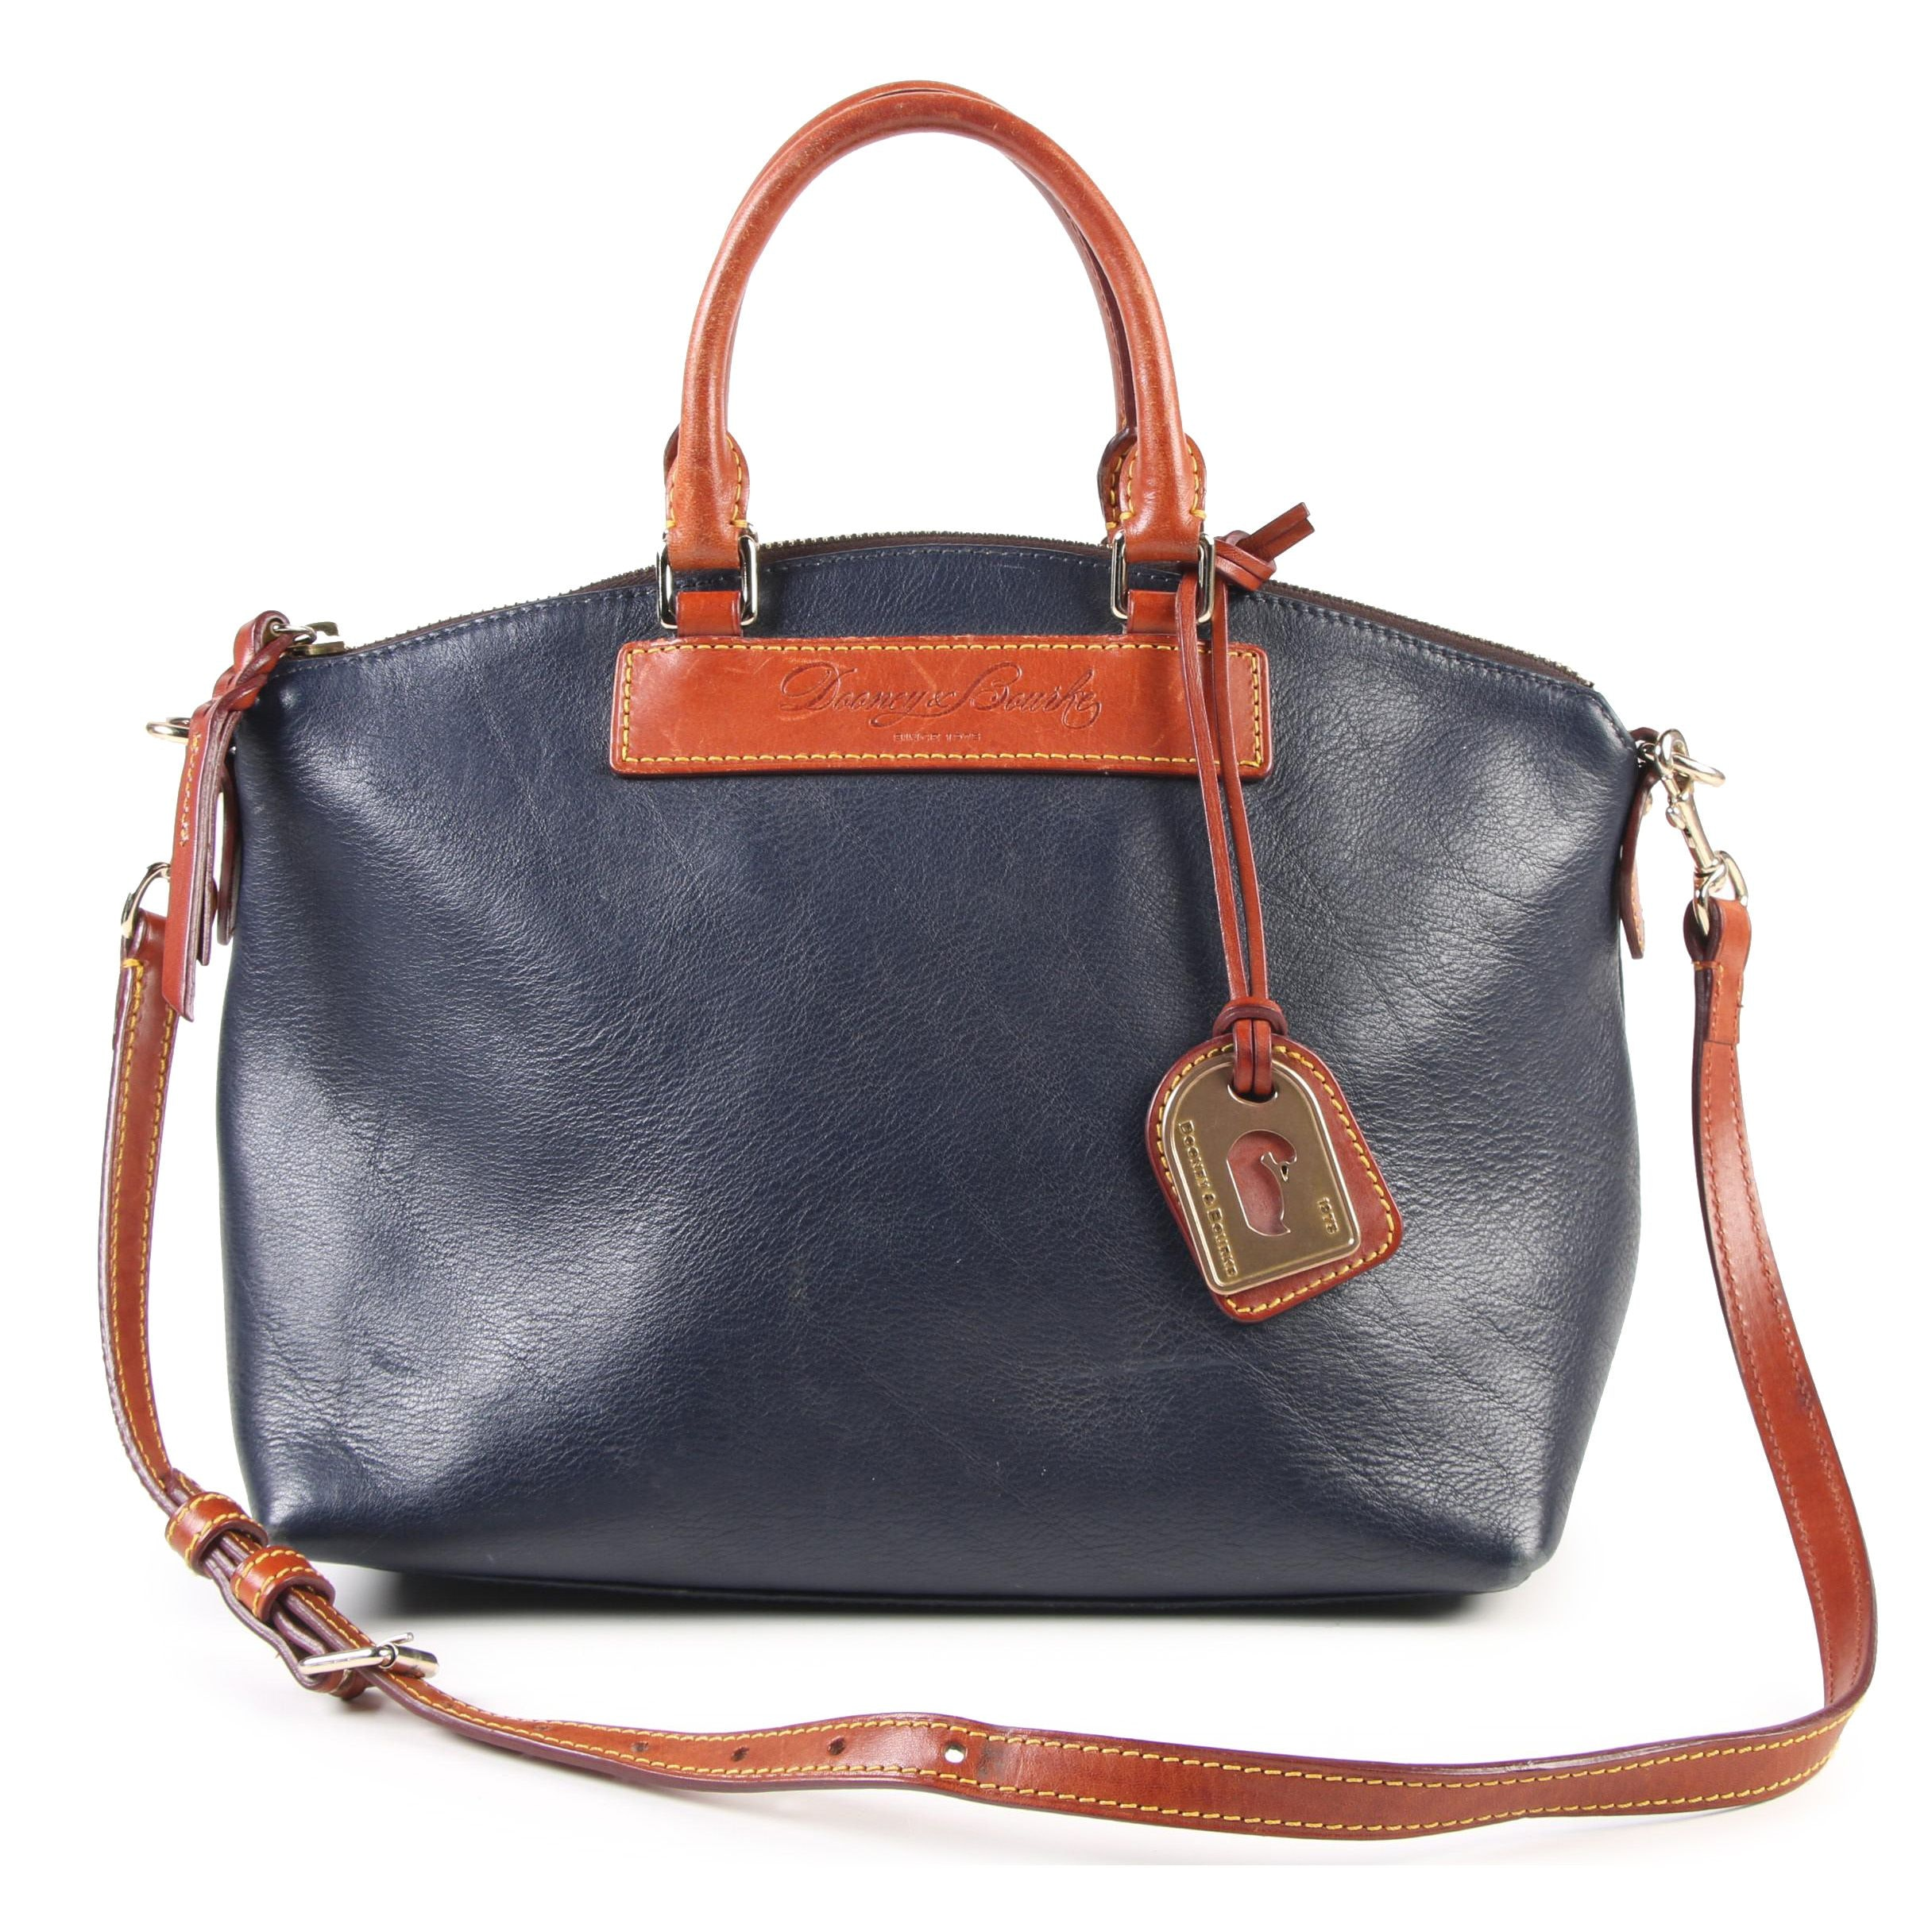 Dooney & Bourke Florentine Leather Collection Navy Blue and Tan Leather Satchel